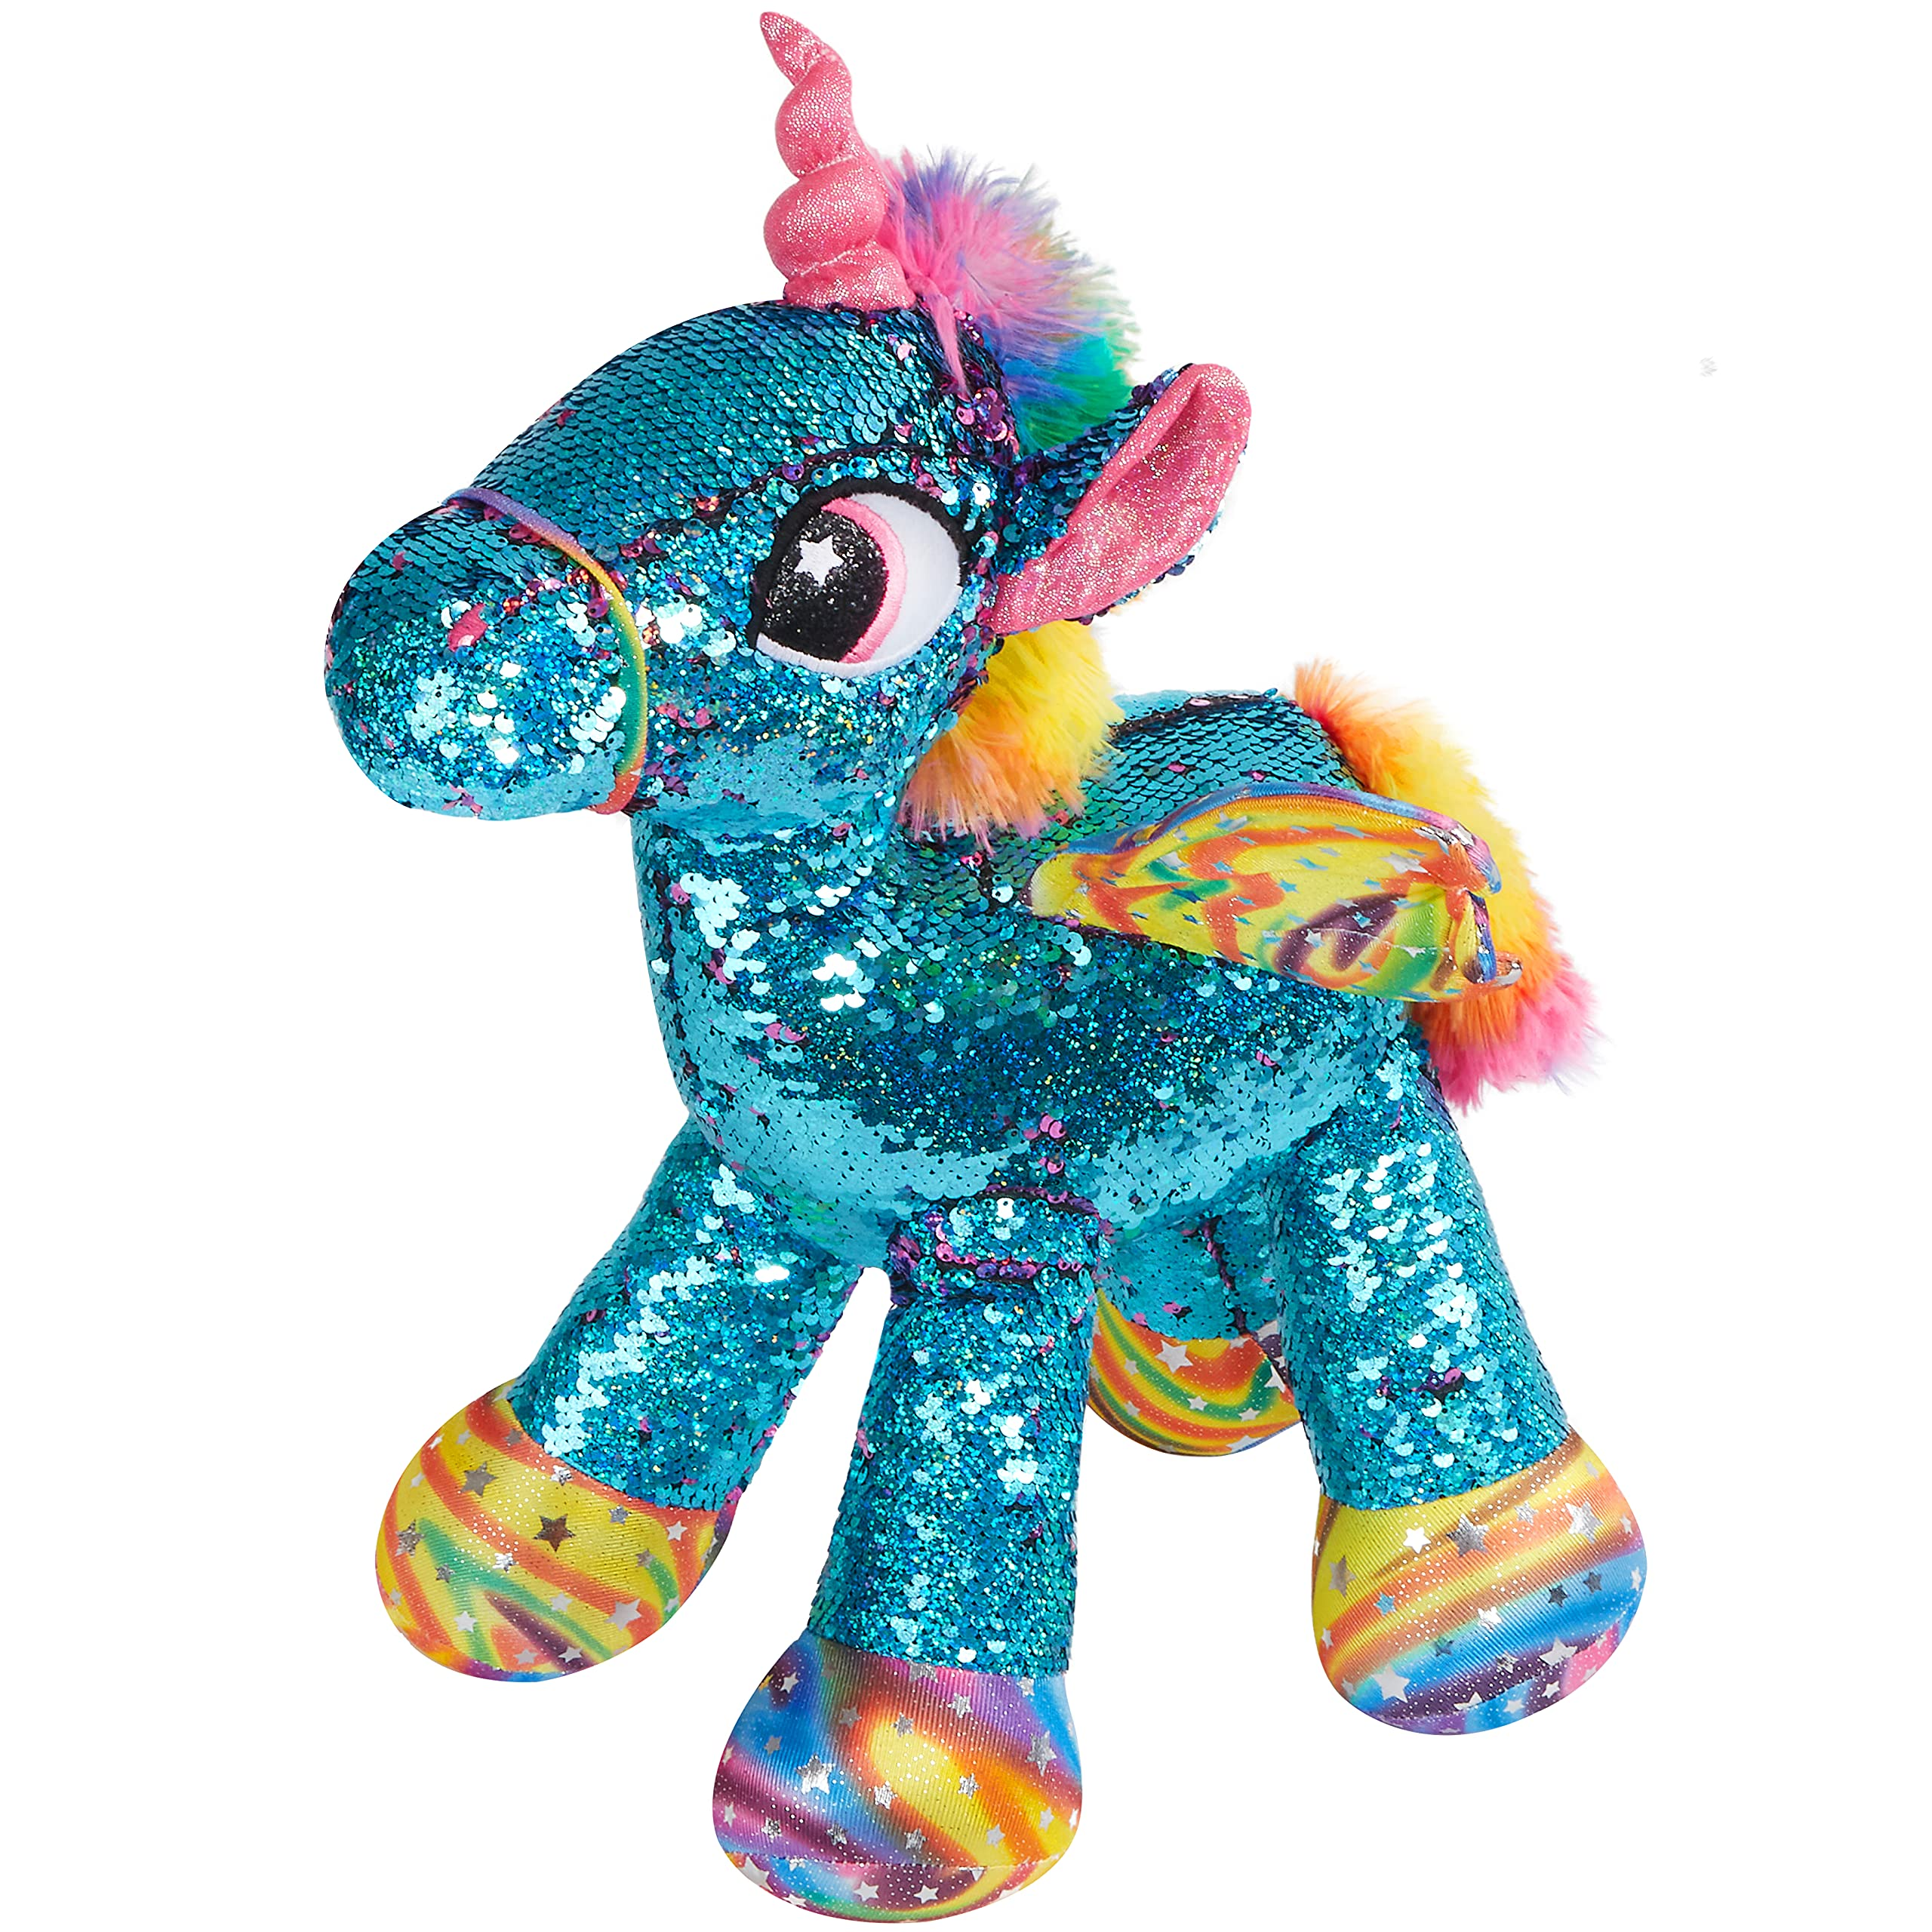 Athoinsu Flippable Sequin Unicorn Stuffed Animal Sparkle Plush Toys with Reversible Glitter Two-Side Sequins Nice Gifts for Kids Friends, Blue, 18''